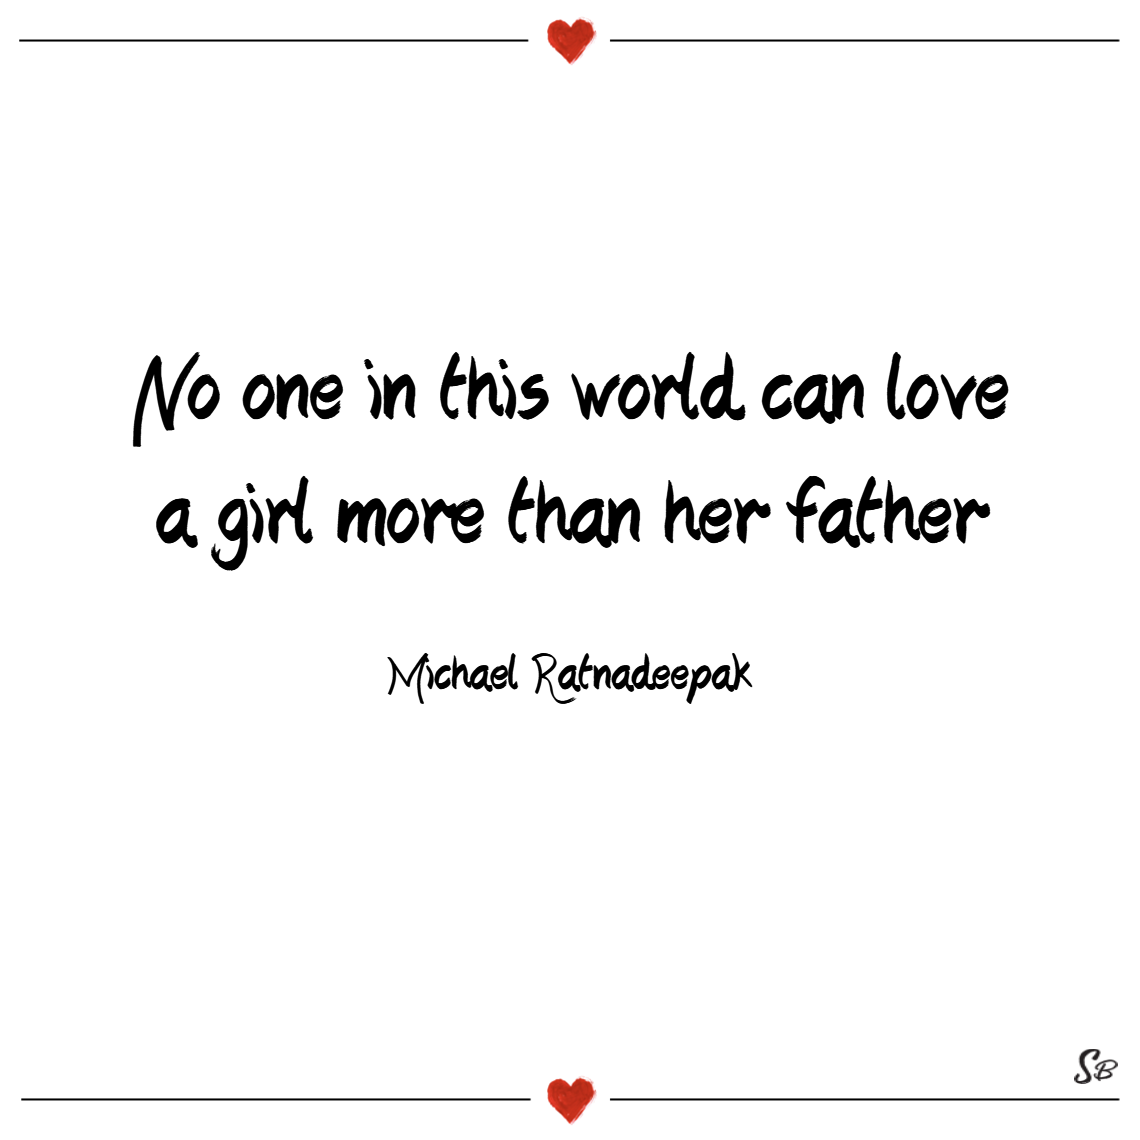 No one in this world can love a girl more than her father. – michael ratnadeepak